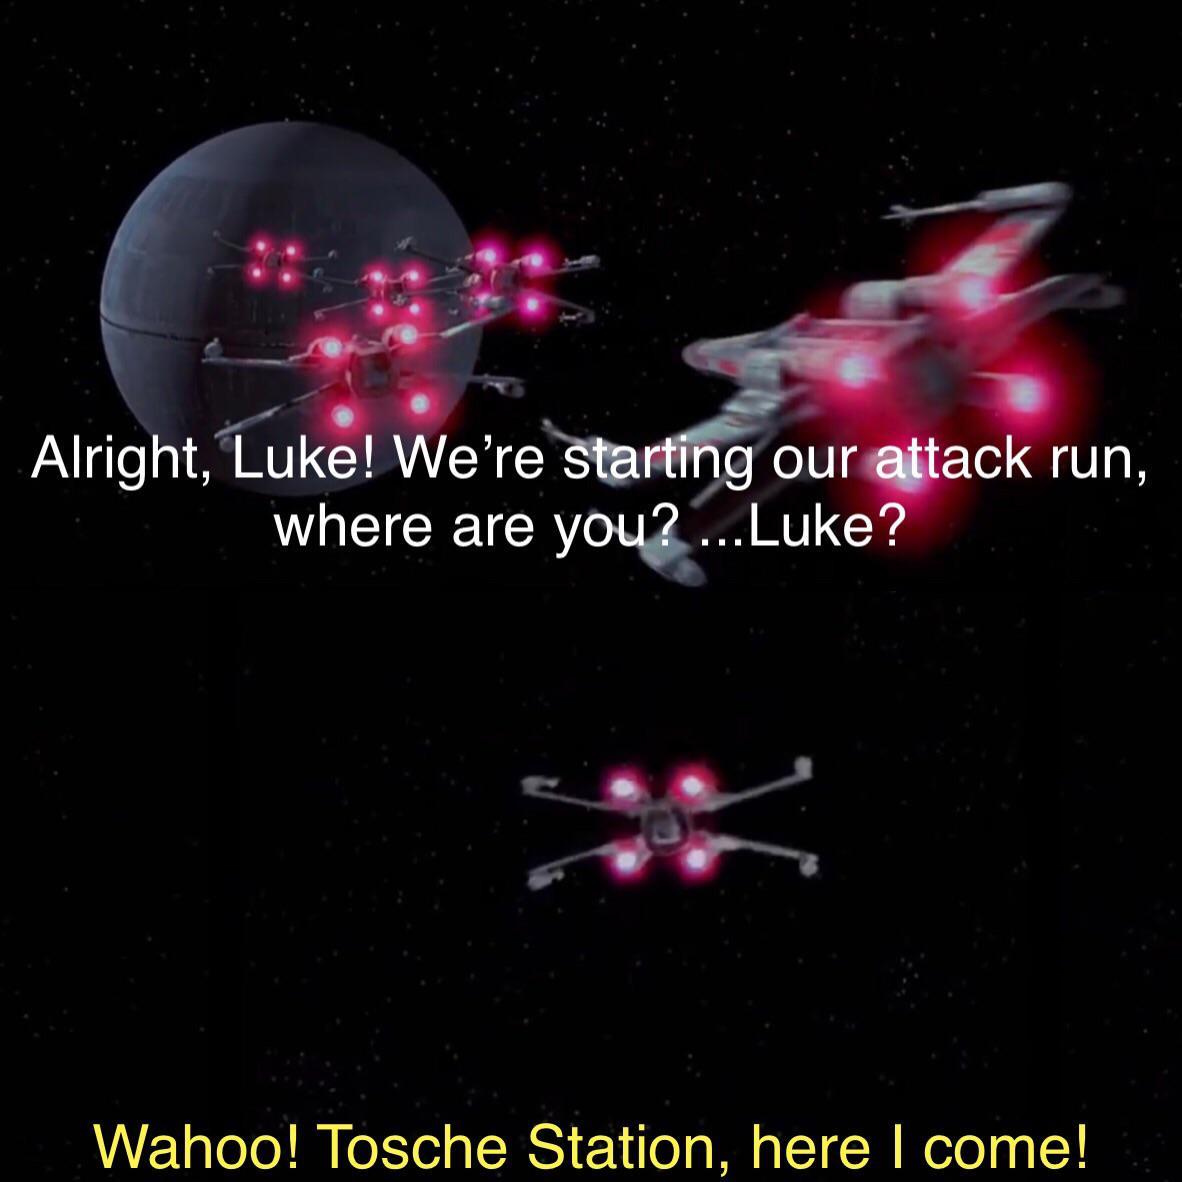 star-wars-memes star-wars text: Alright, Luke! We're *tar$our Attack run, where are you. ...Luke? Wahoo! Tosche Station, here I come!